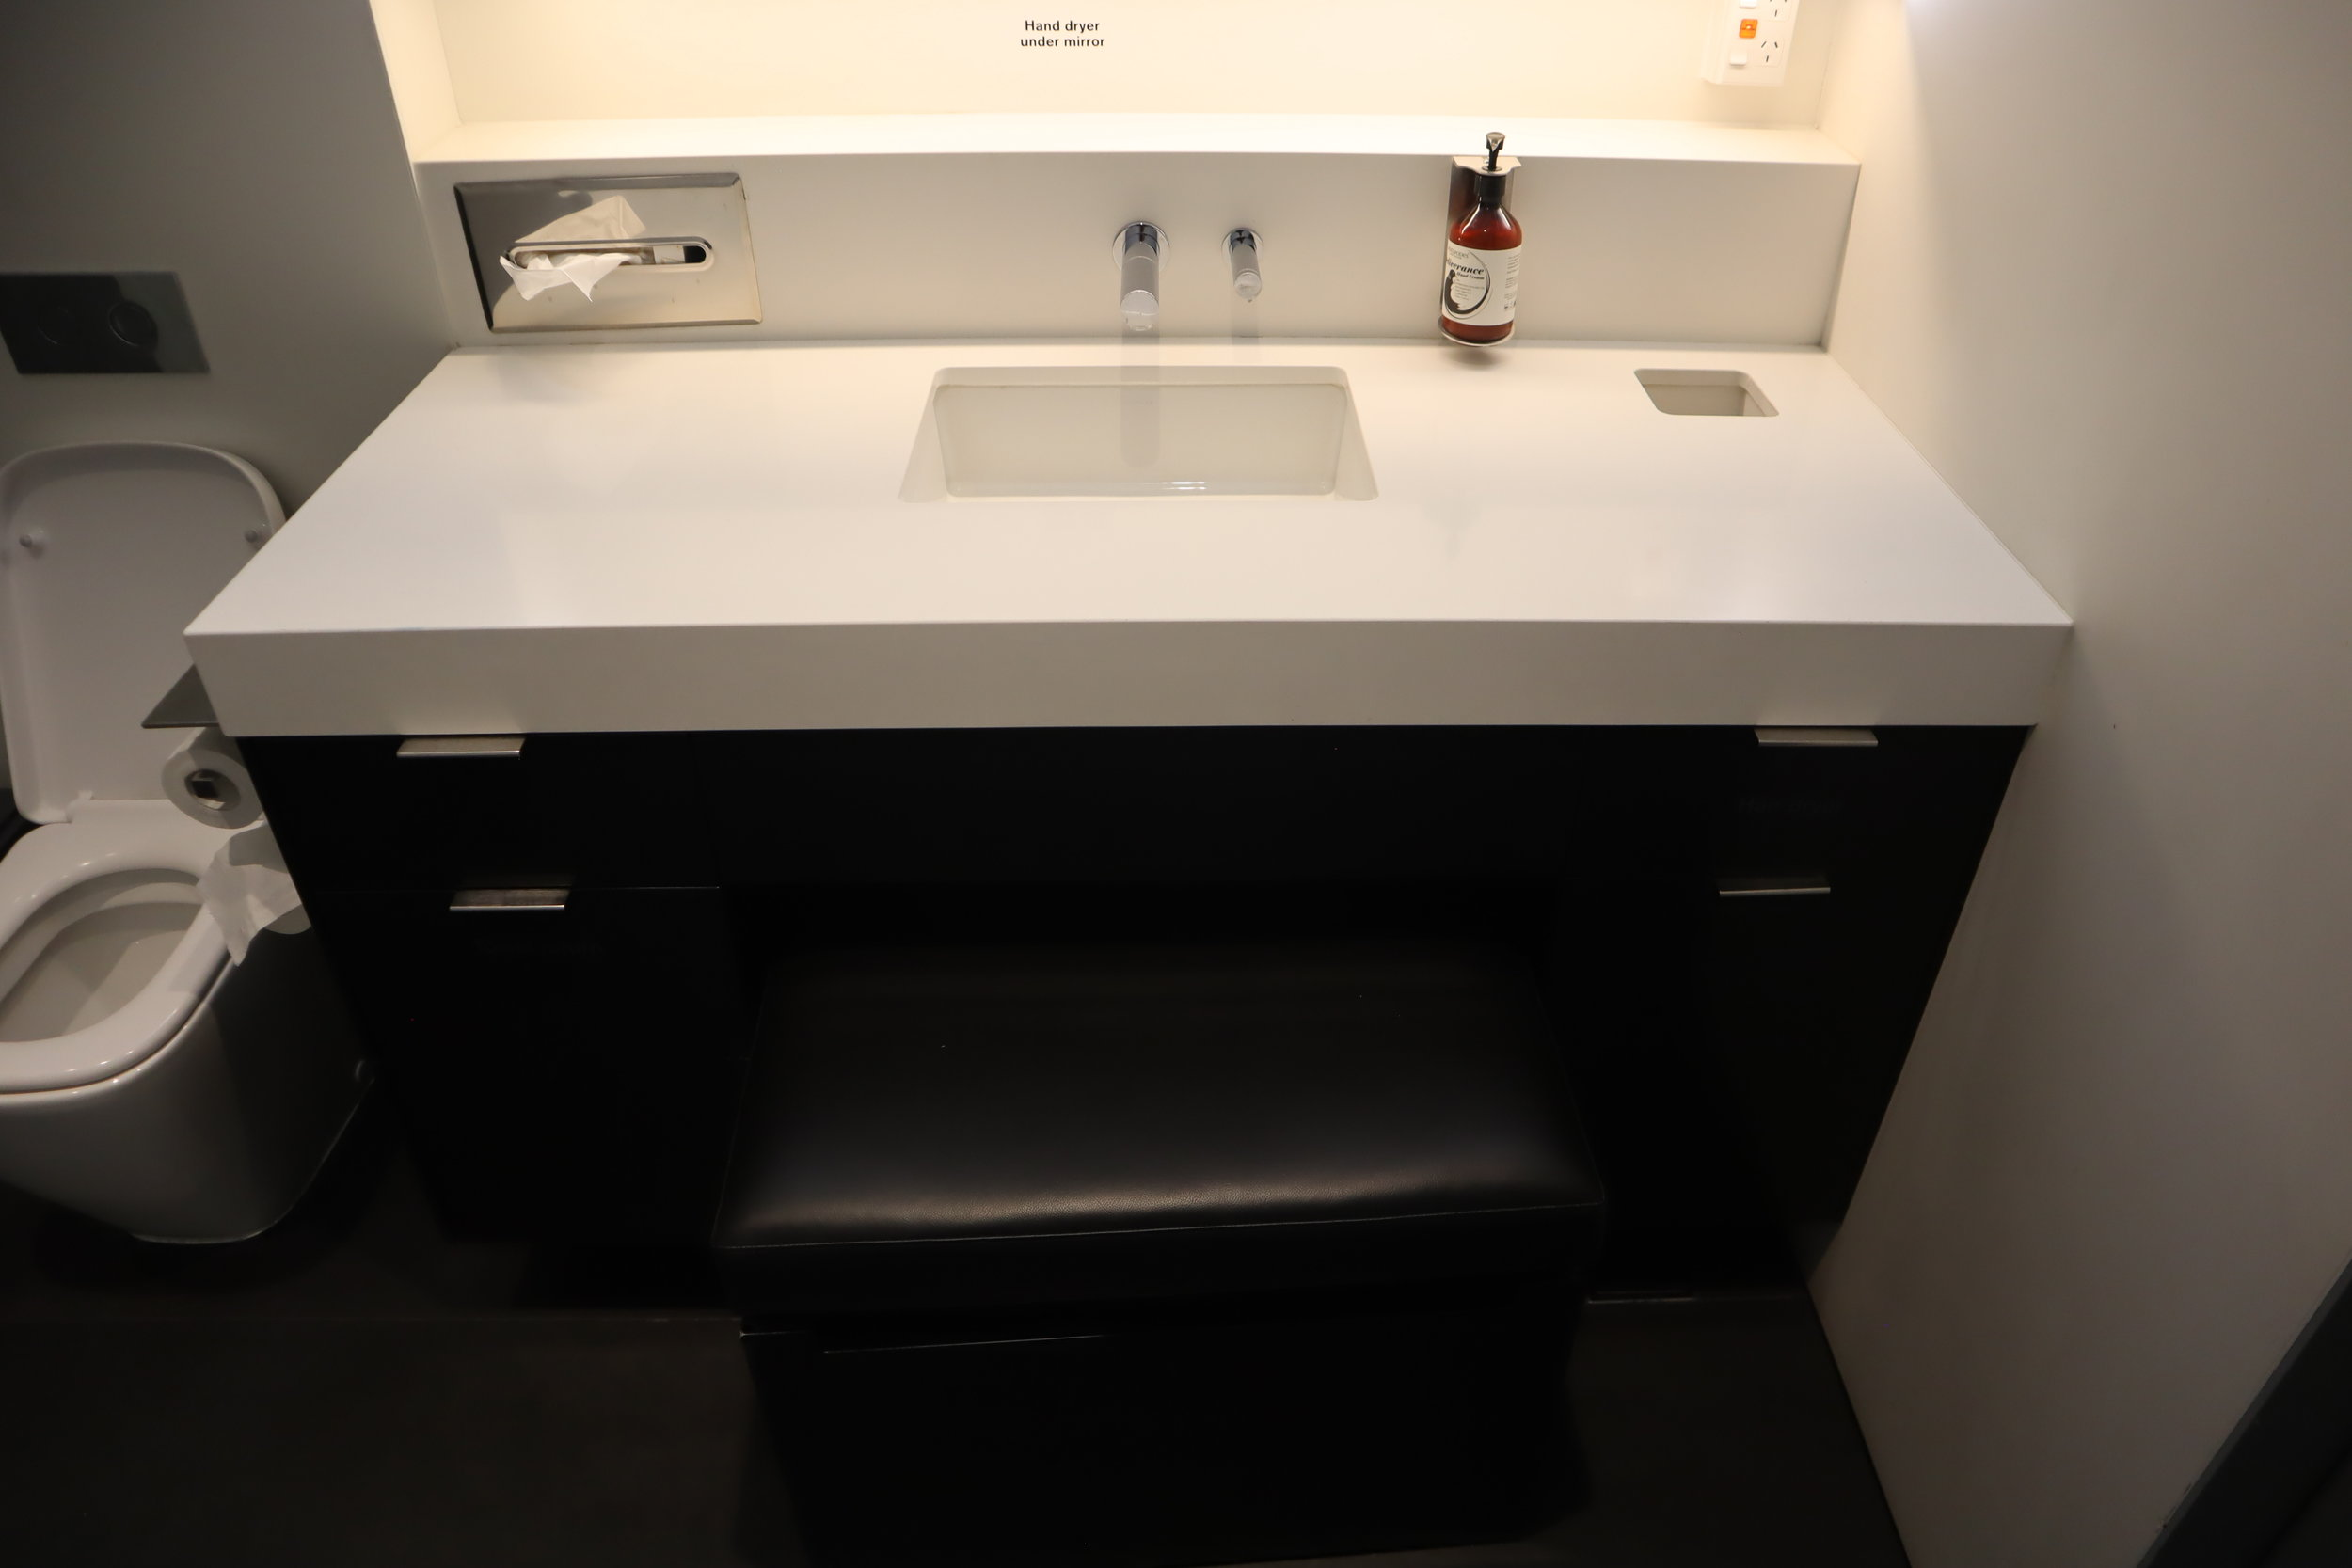 Air New Zealand Lounge Auckland – Shower room sink